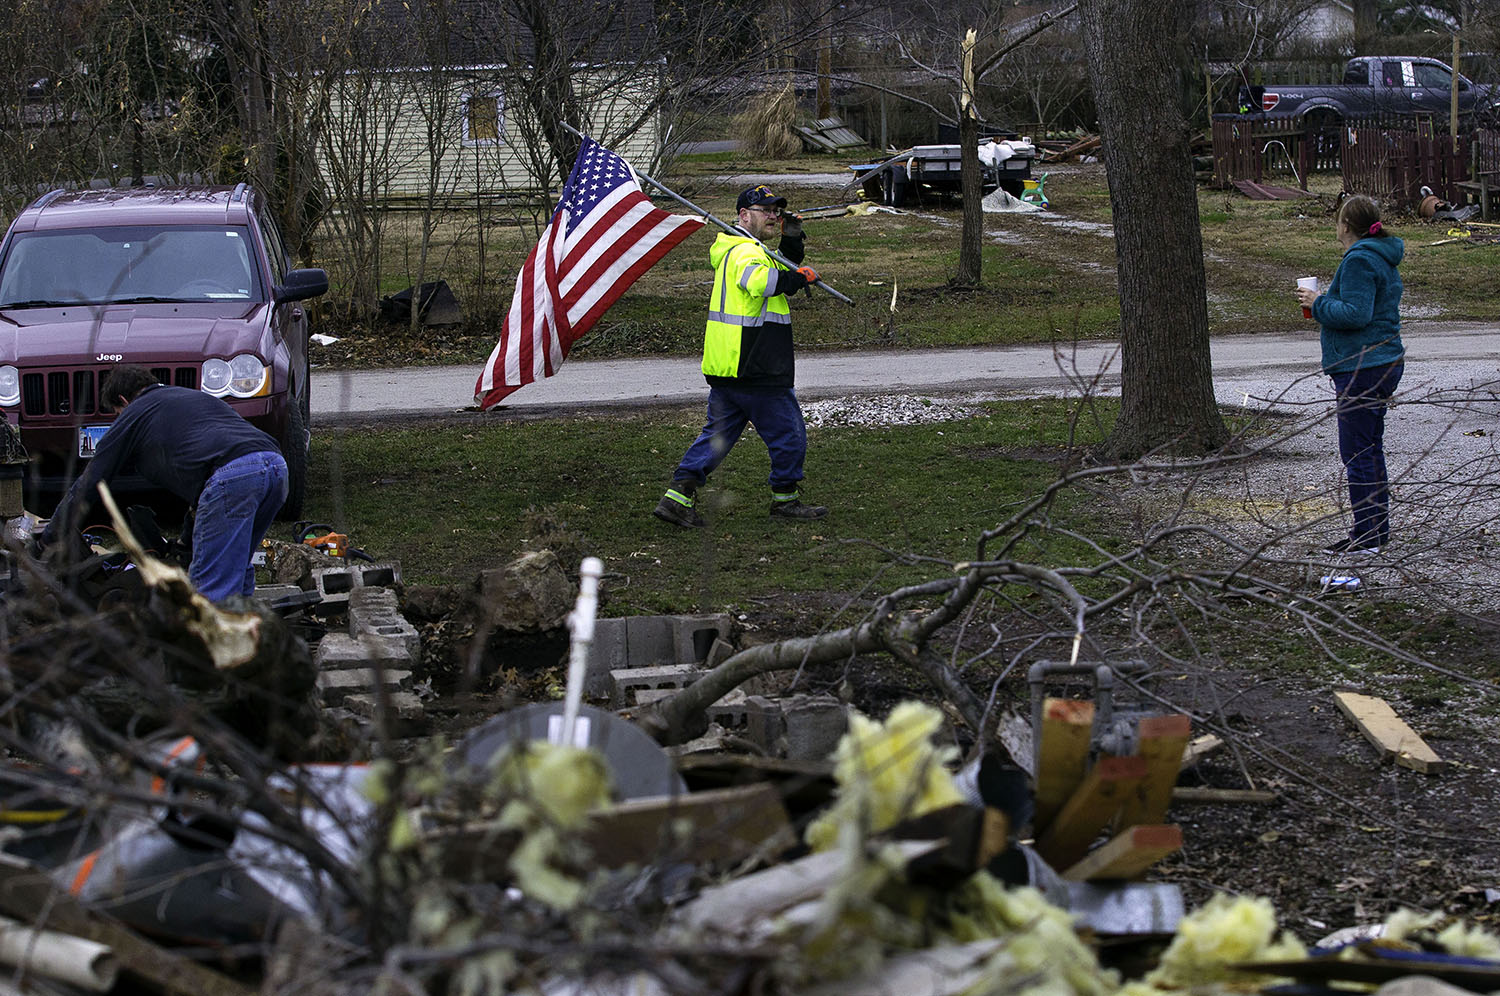 "Pete Barker of Harrisburg, Ill., carries a flag he got from a neighbor to put in front of his parent's tornado-damaged house in Taylorville Sunday, Dec. 2, 2018. Barker said his dad, a Vietnam veteran who is hospitalized for a heart attack he suffered during the storm, always had flags here. ""Dad wouldn't like us not having flags in front of the house right now."" [Ted Schurter/The State Journal-Register]"